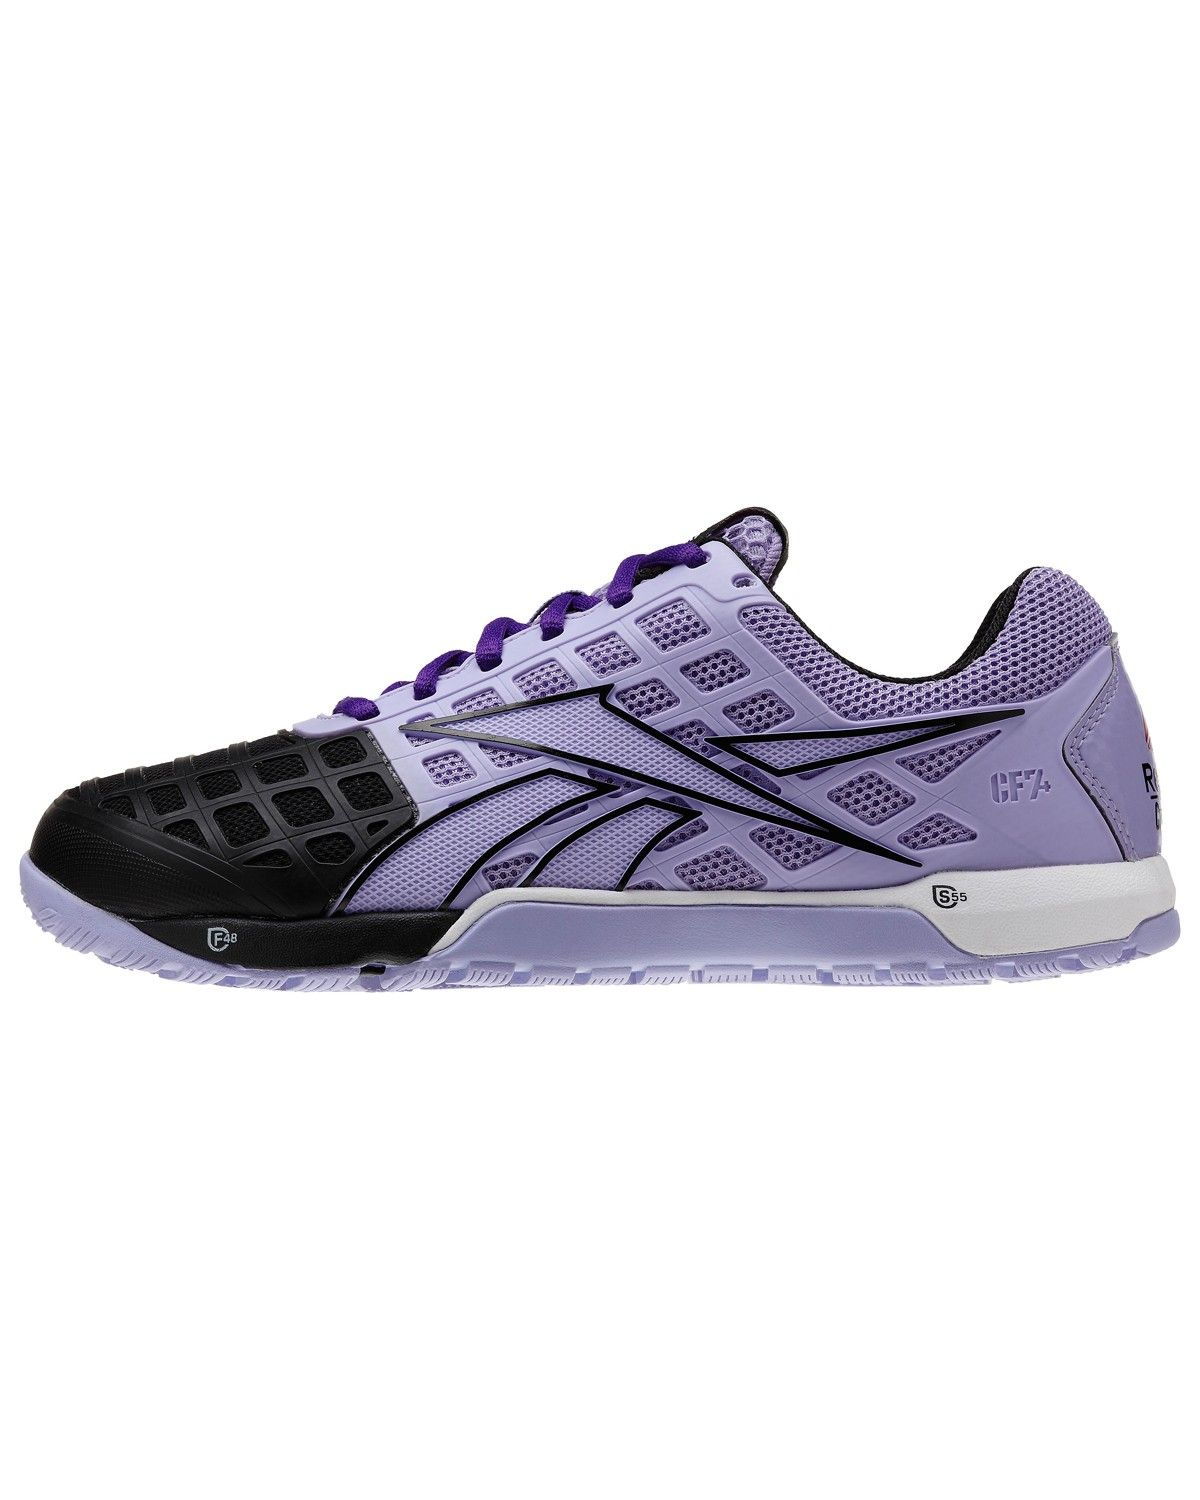 2dd298fa937593 Womens Reebok CrossFit Nano 3.0-ordered! Can t wait till they get here so I can  test them out!